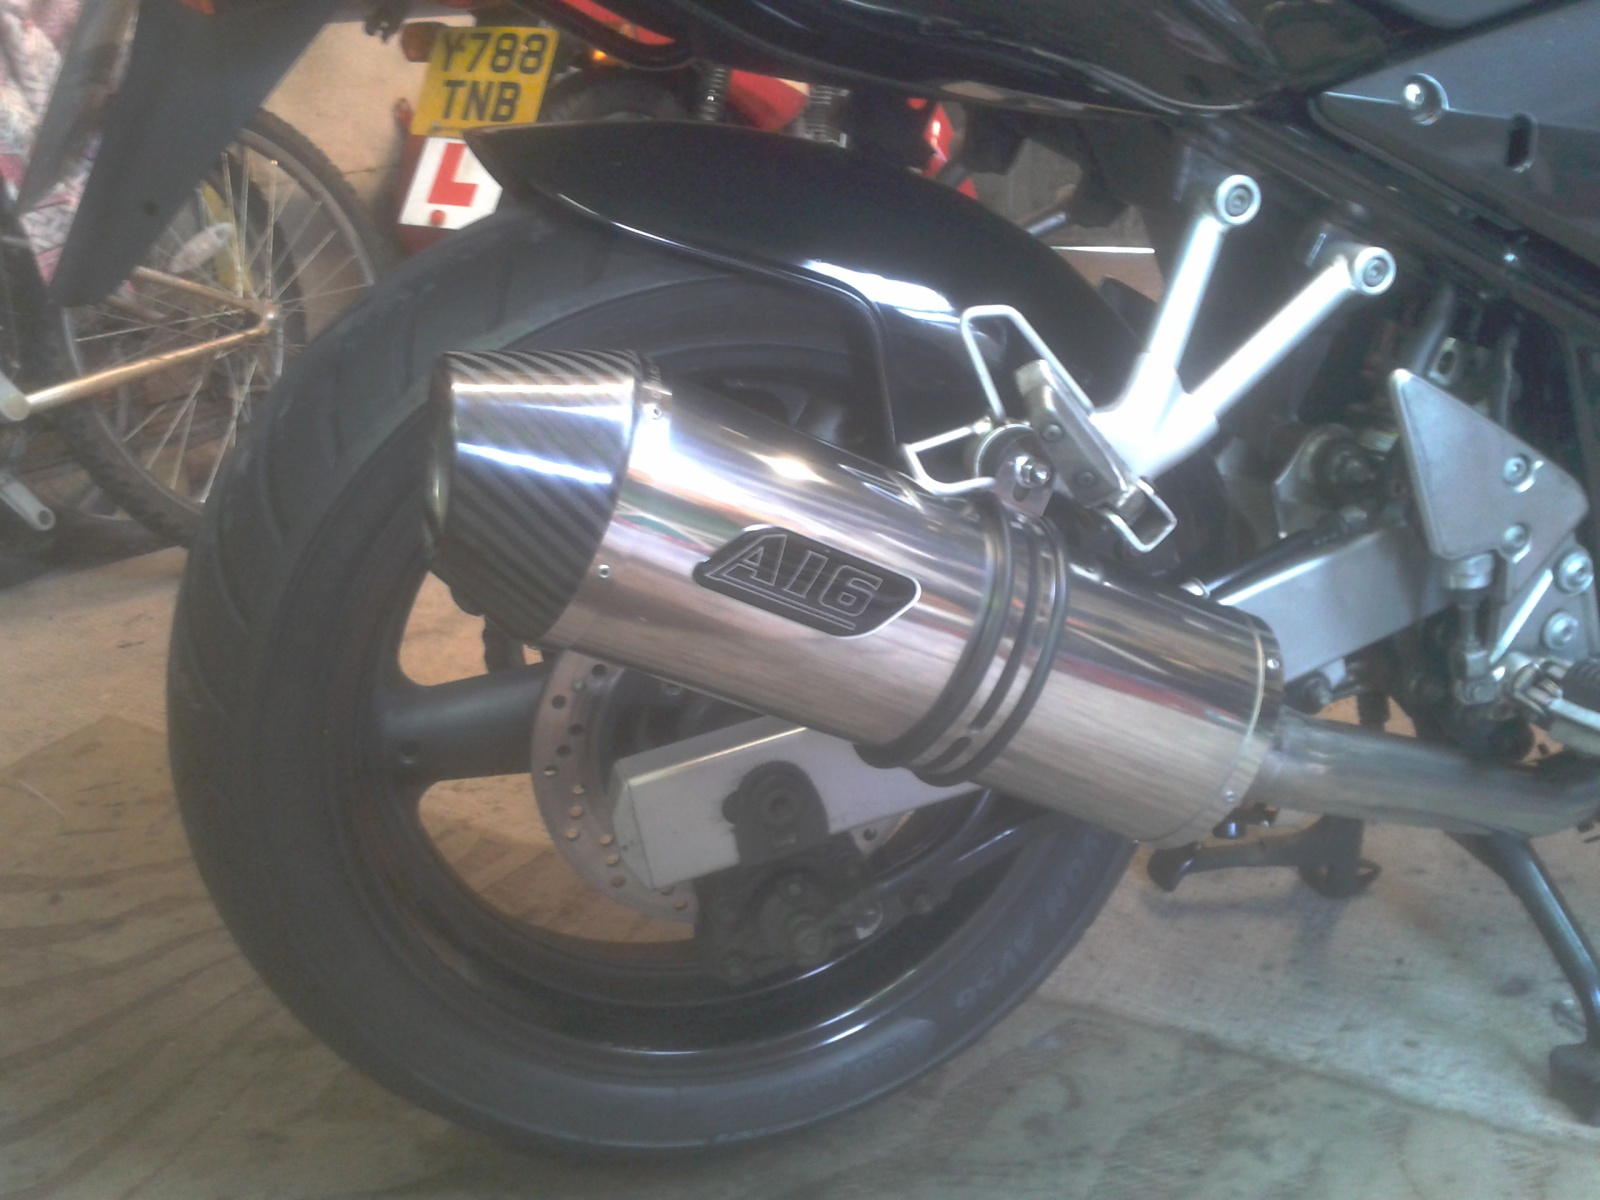 """Suzuki GSF 600 Bandit<p>A16 Road Legal Stainless Exhaust with Carbon Cap Outlet</p><br/><a href=""""https://a16roadnracesupplies.co.uk/product/a16-suzuki-exhausts/"""">Buy now!</a>"""